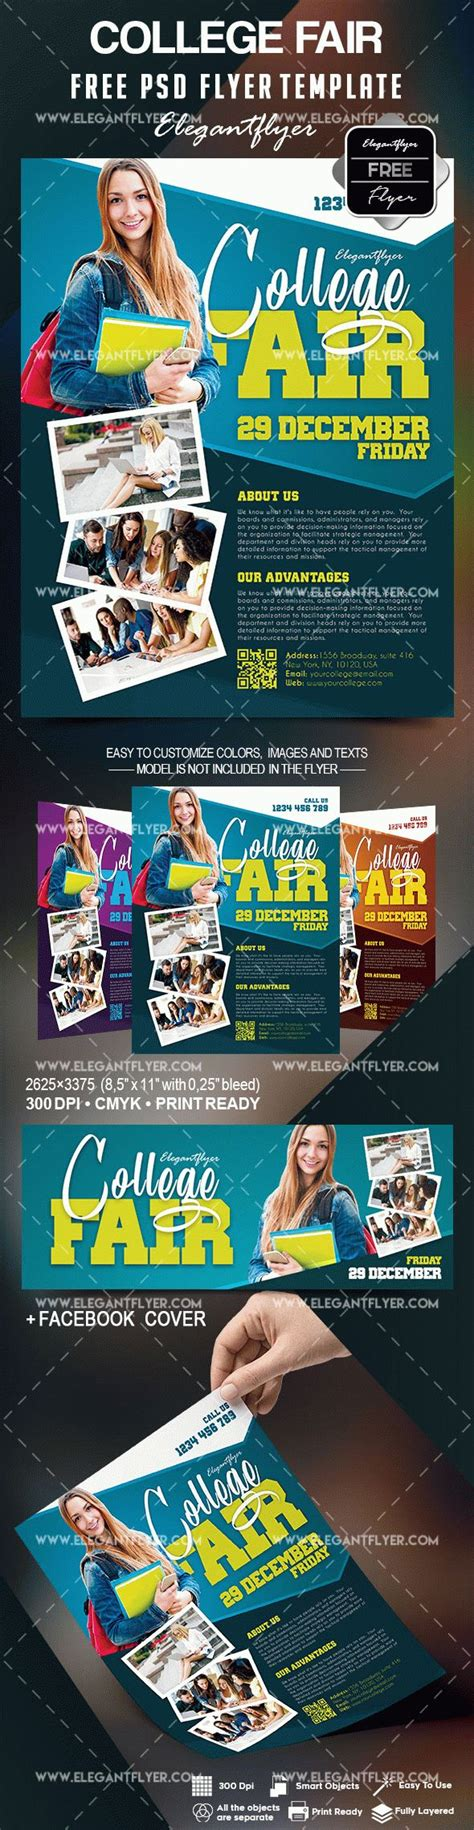 Free College Fair Flyer Template By Elegantflyer College Fair Flyer Template